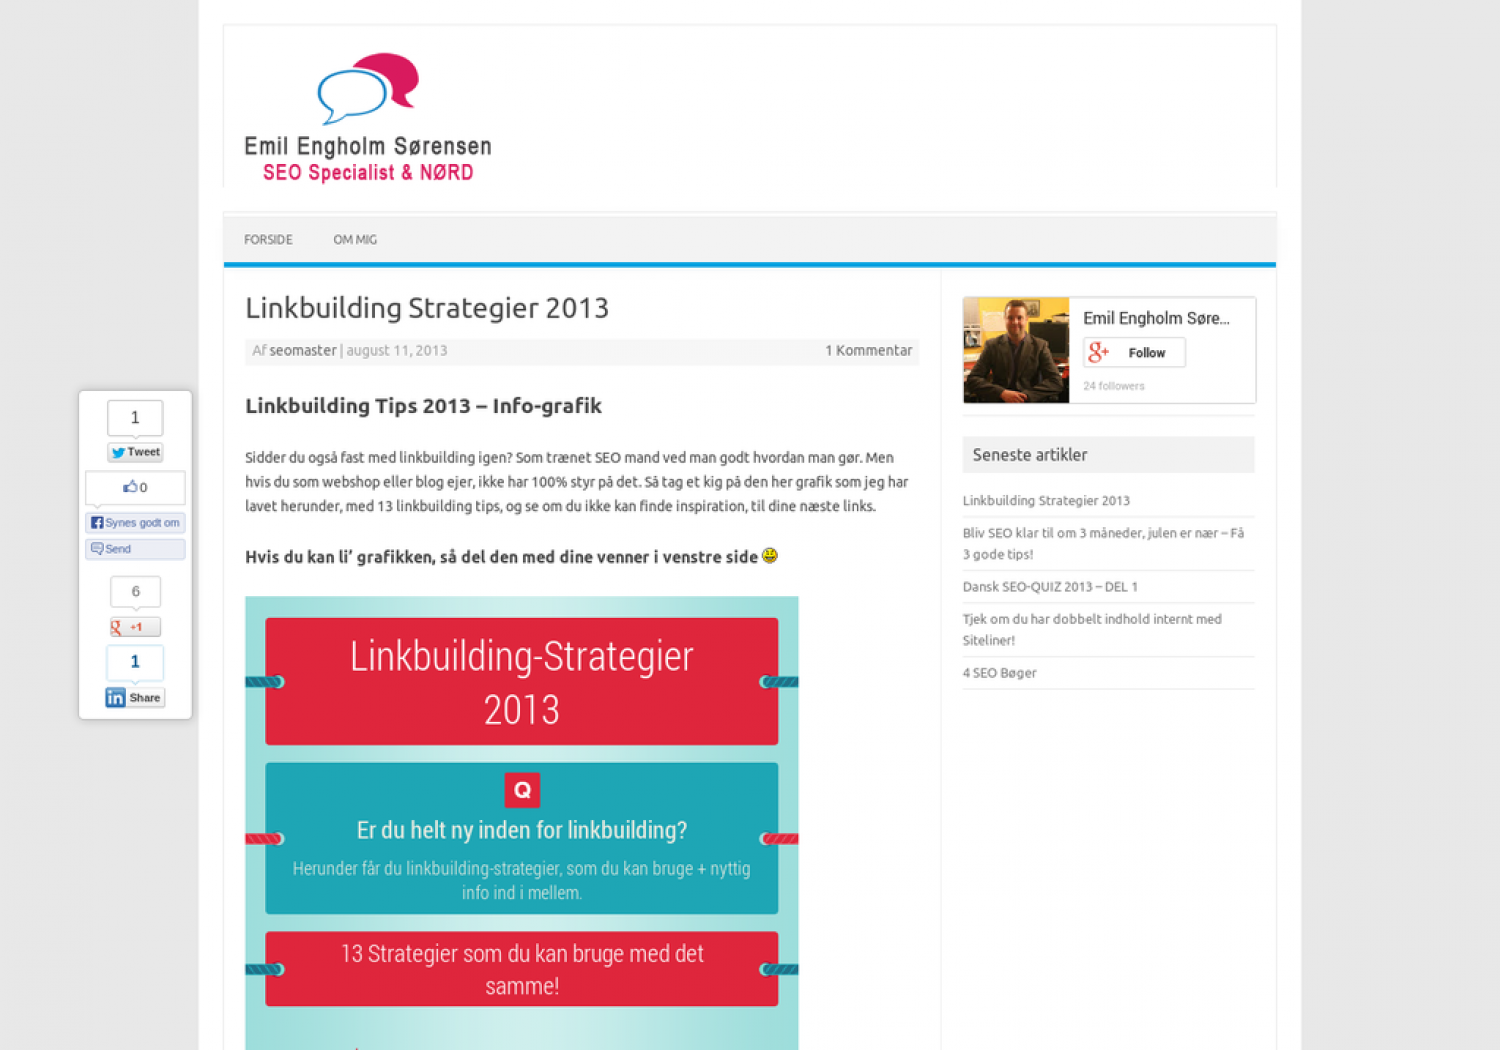 Danish Linkbuilding Strategies 2013 Infographic